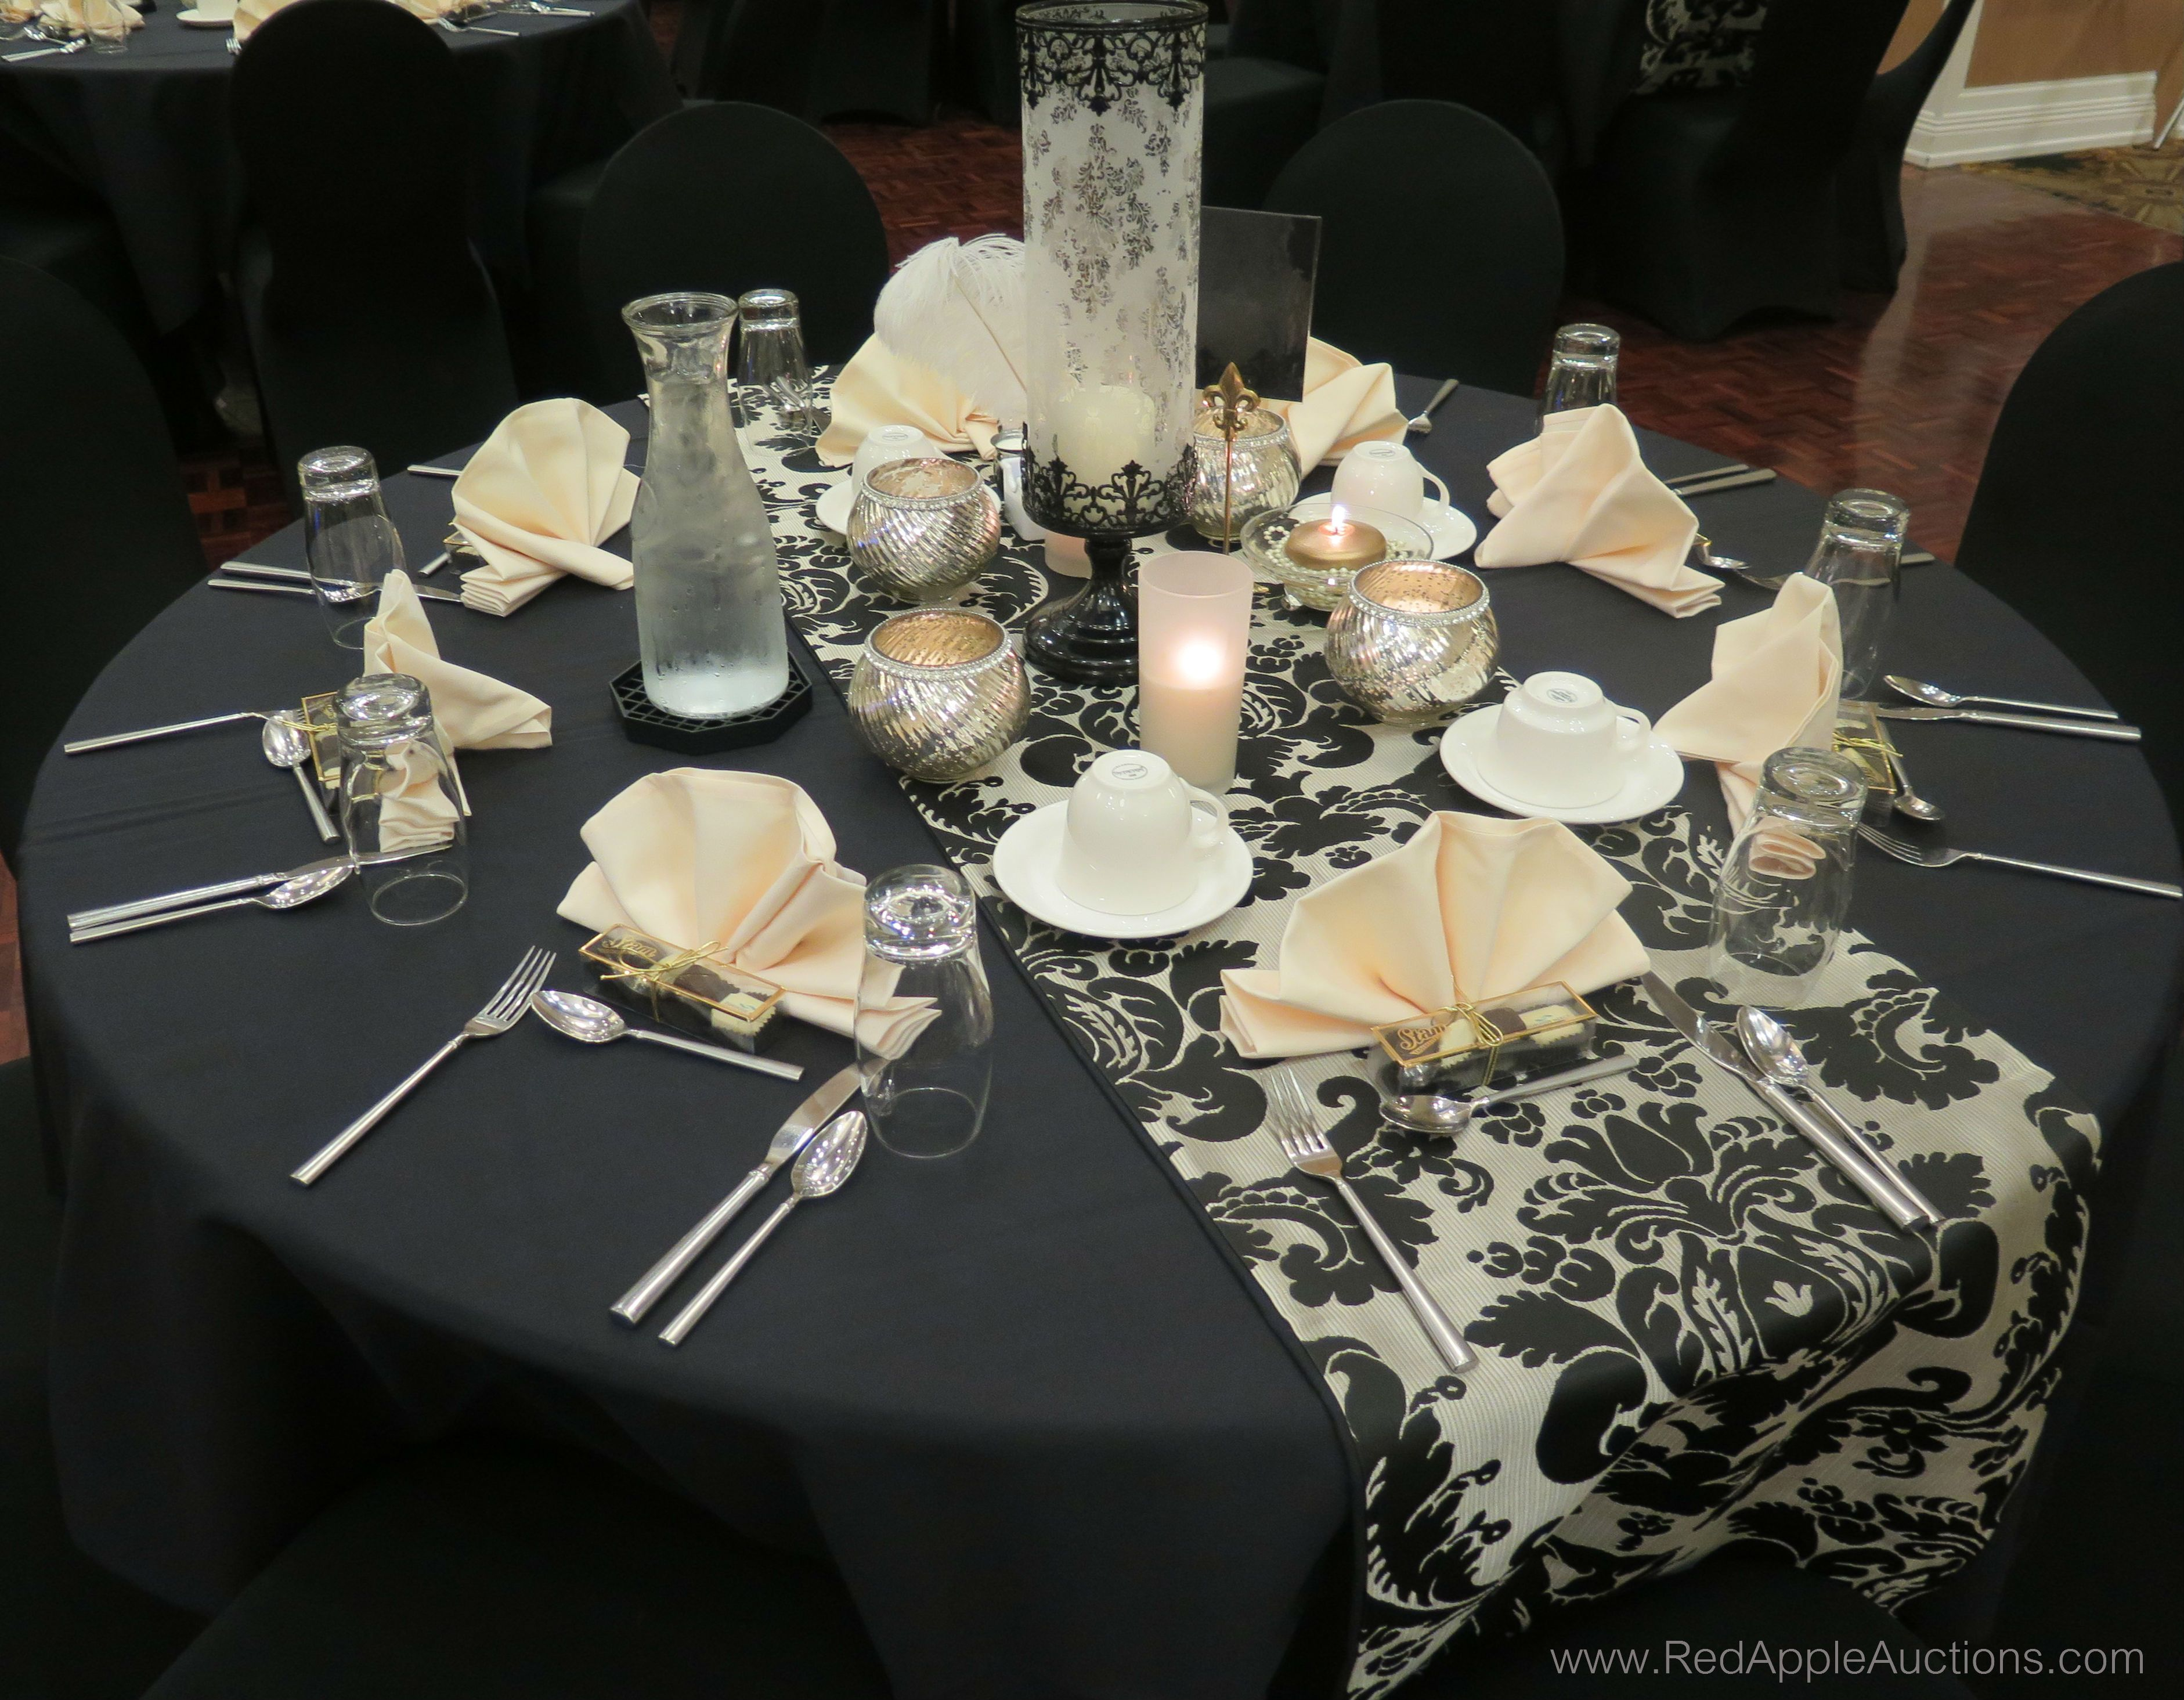 1920s themed event, using black and white as the colors